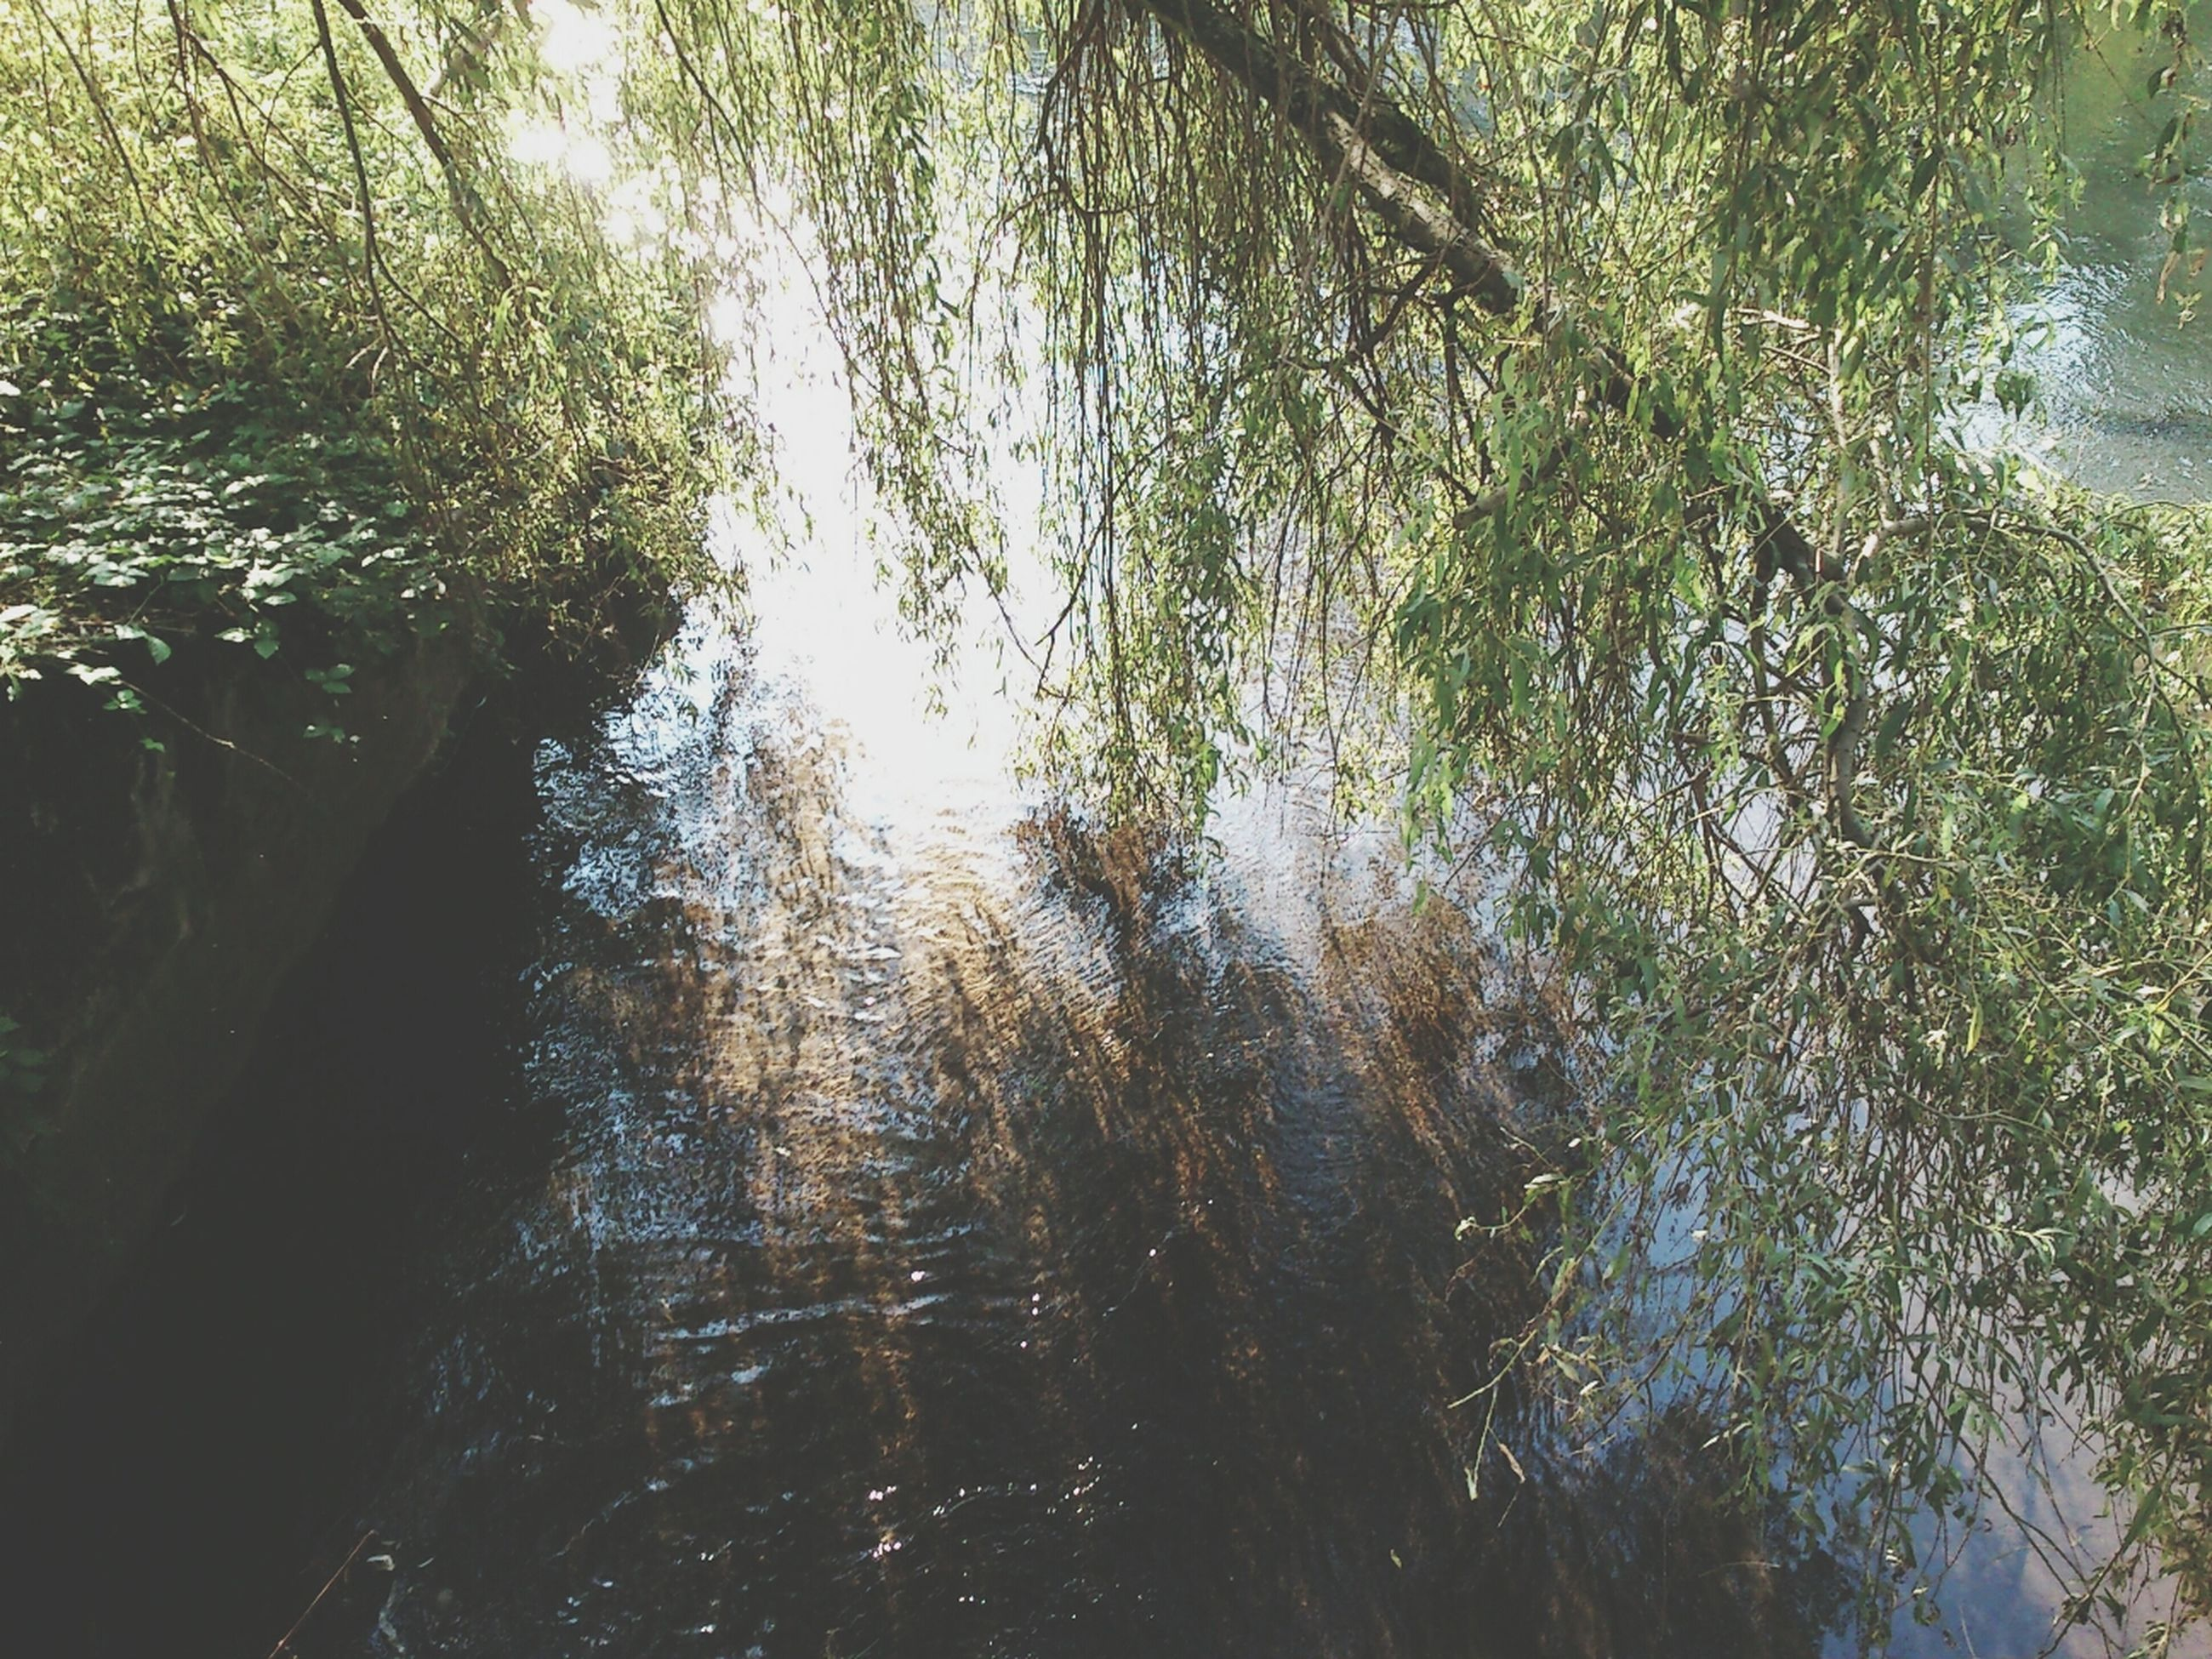 tree, water, tranquility, tranquil scene, nature, beauty in nature, growth, reflection, scenics, branch, lake, forest, tree trunk, sunlight, day, idyllic, outdoors, non-urban scene, no people, waterfront